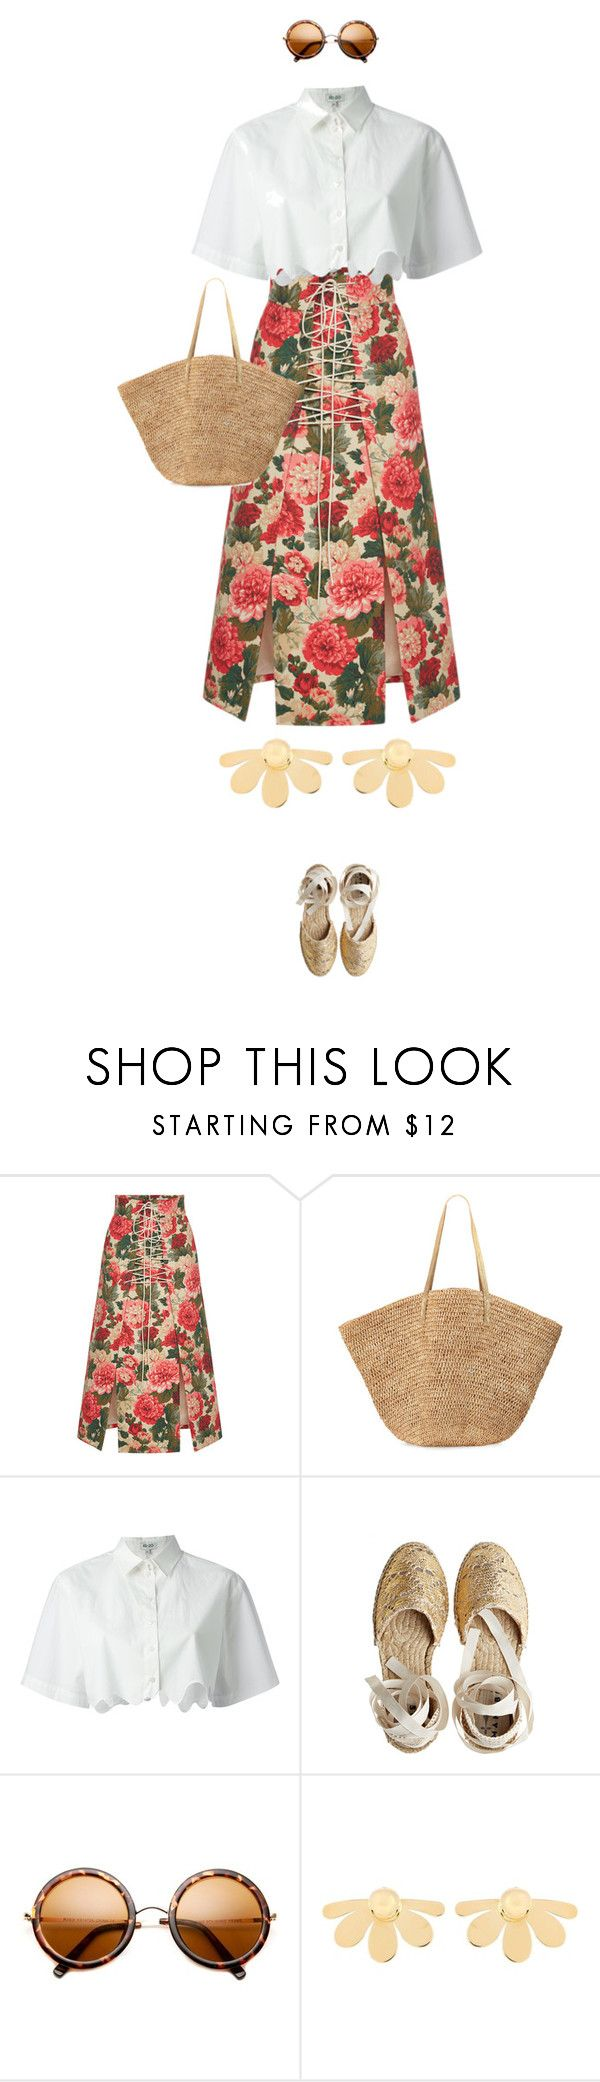 """eva 1421"" by evava-c on Polyvore featuring MSGM, Flora Bella, Kenzo, Castañer and Simone Rocha"